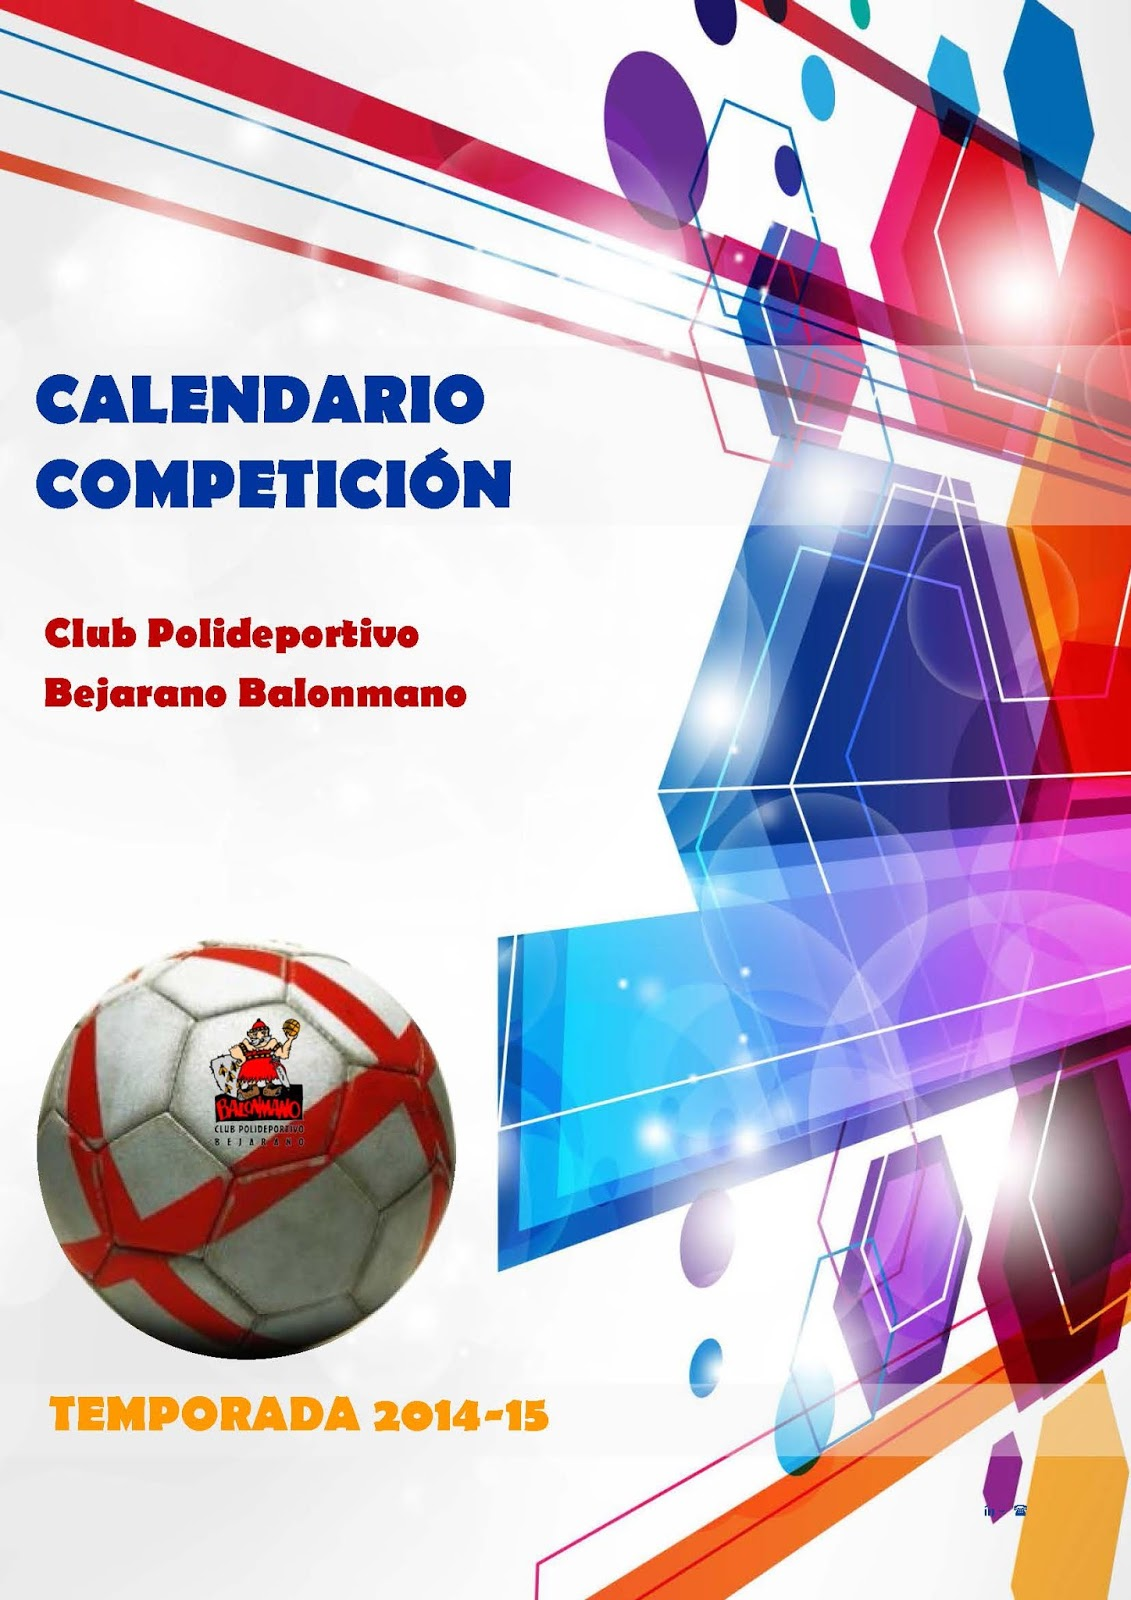 cartel anunciador del calendario de club